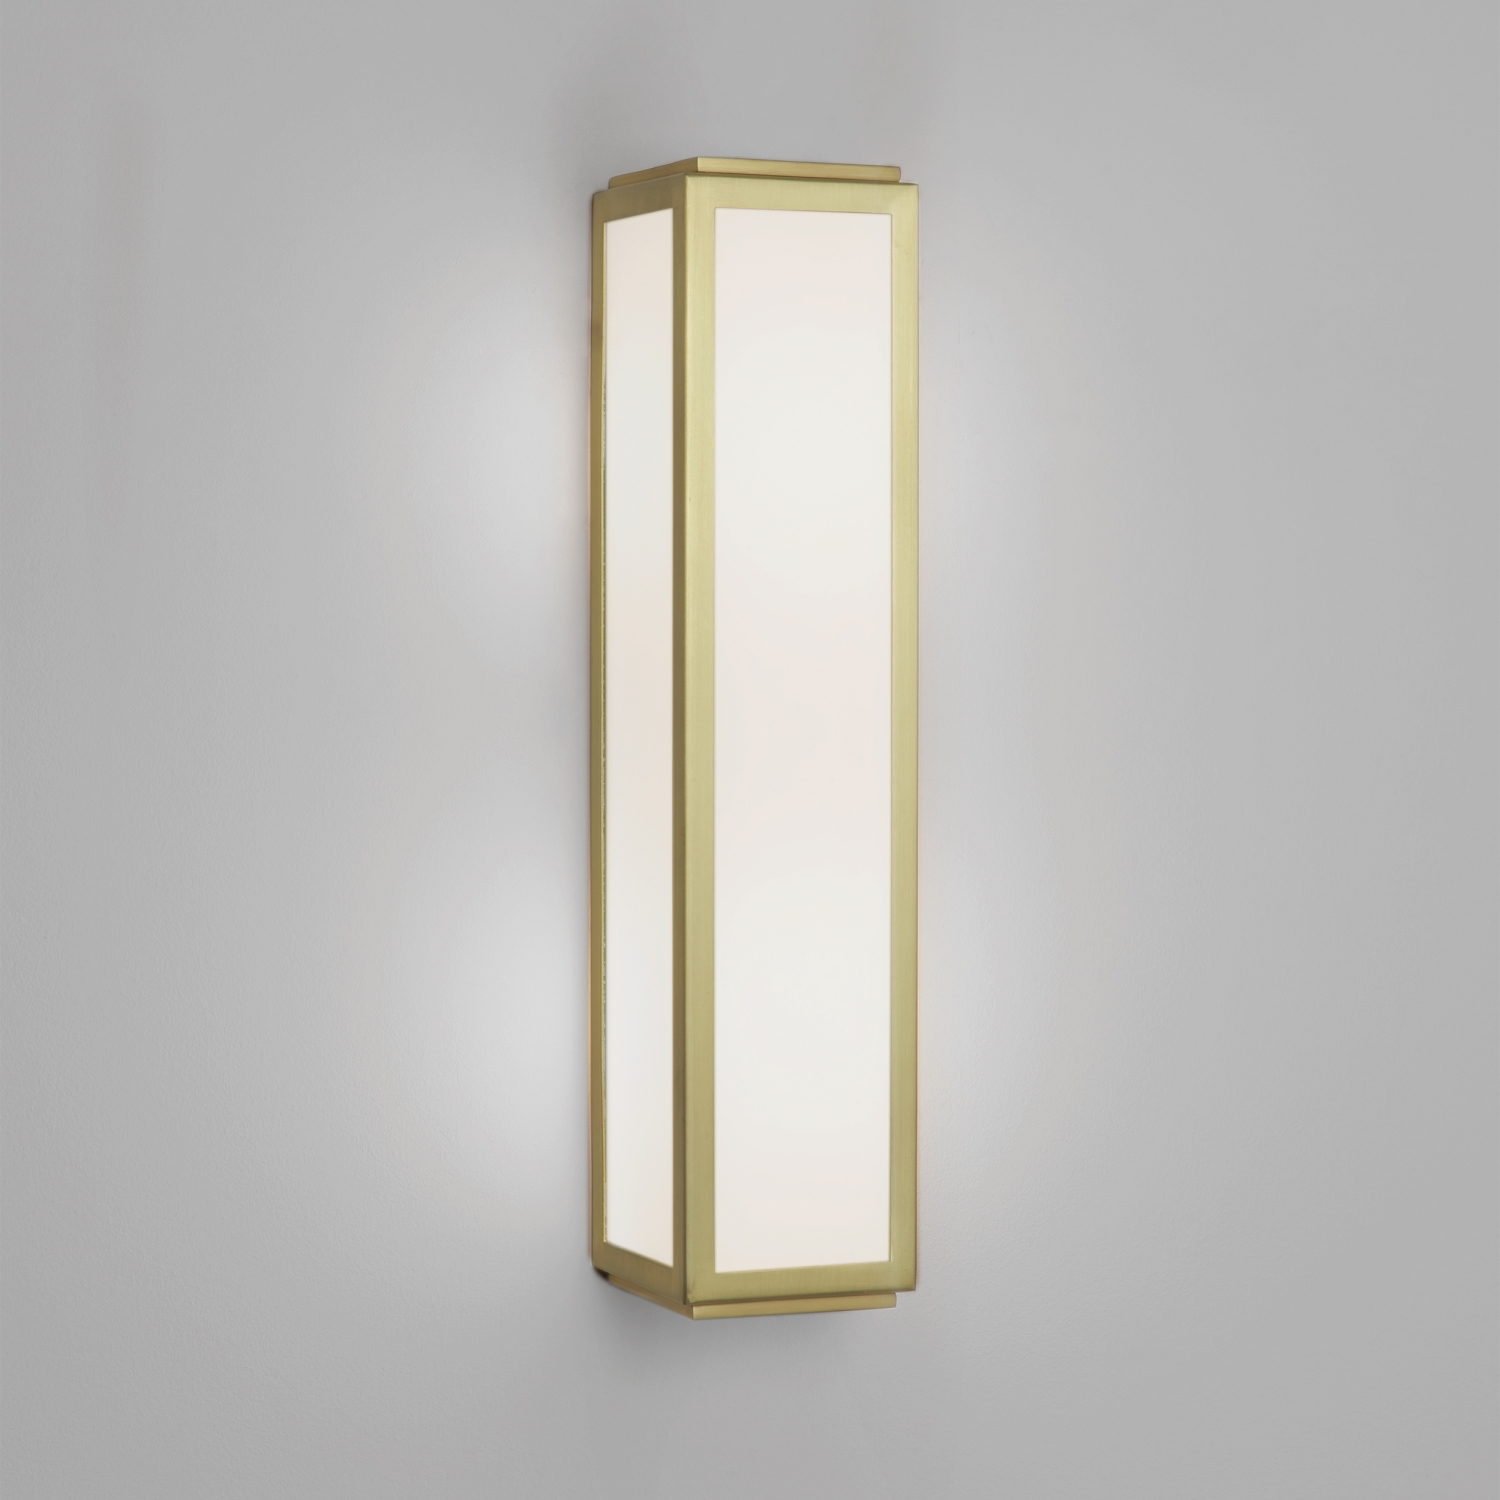 ASTRO MASHIKO 360 classic Bathroom wall light 2 x 40W E14 matt gold Thumbnail 1